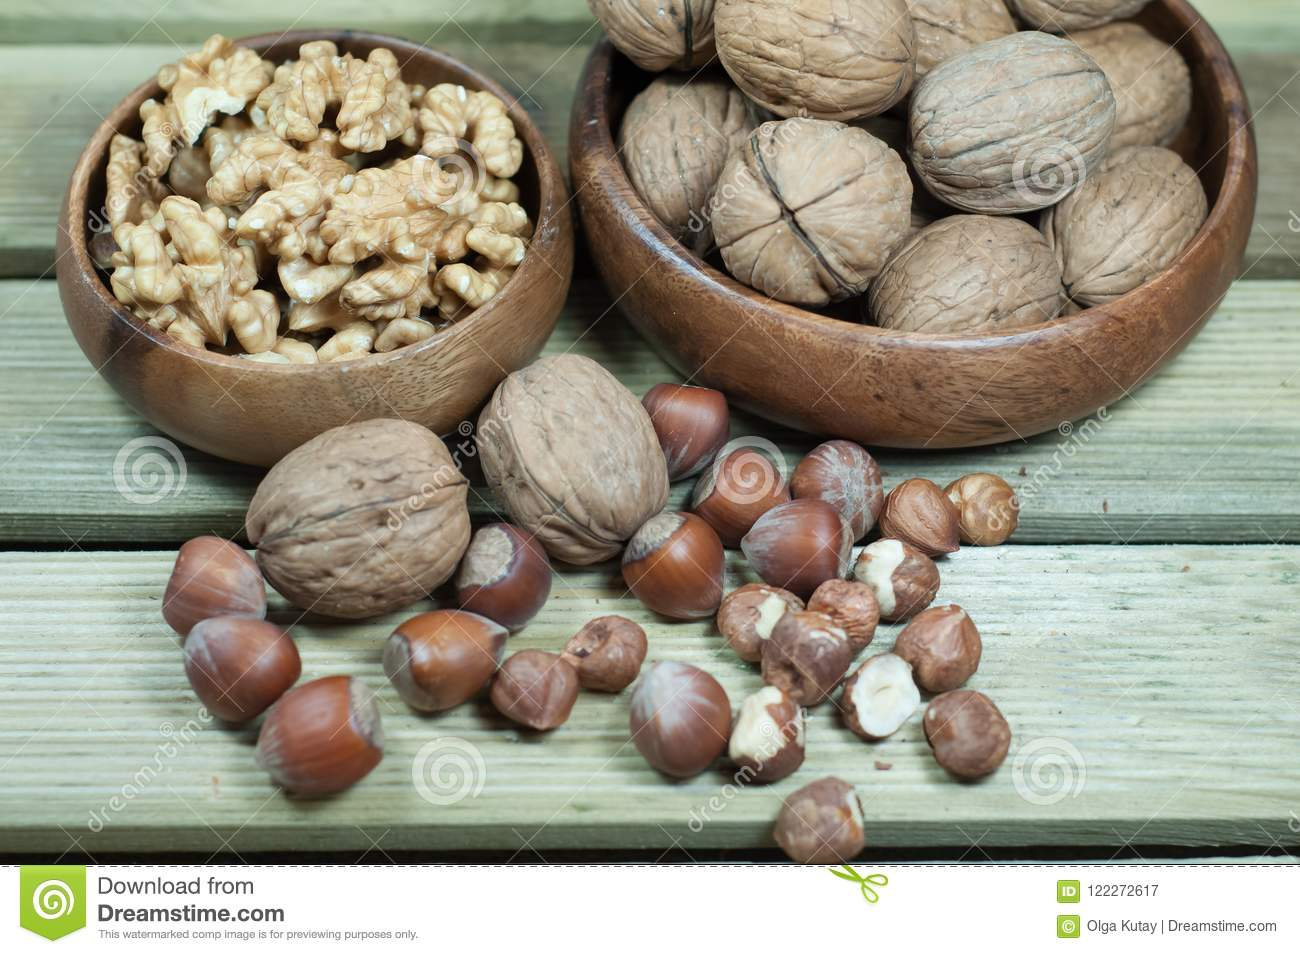 Walnuts, hazelnuts, peeled and inshell.